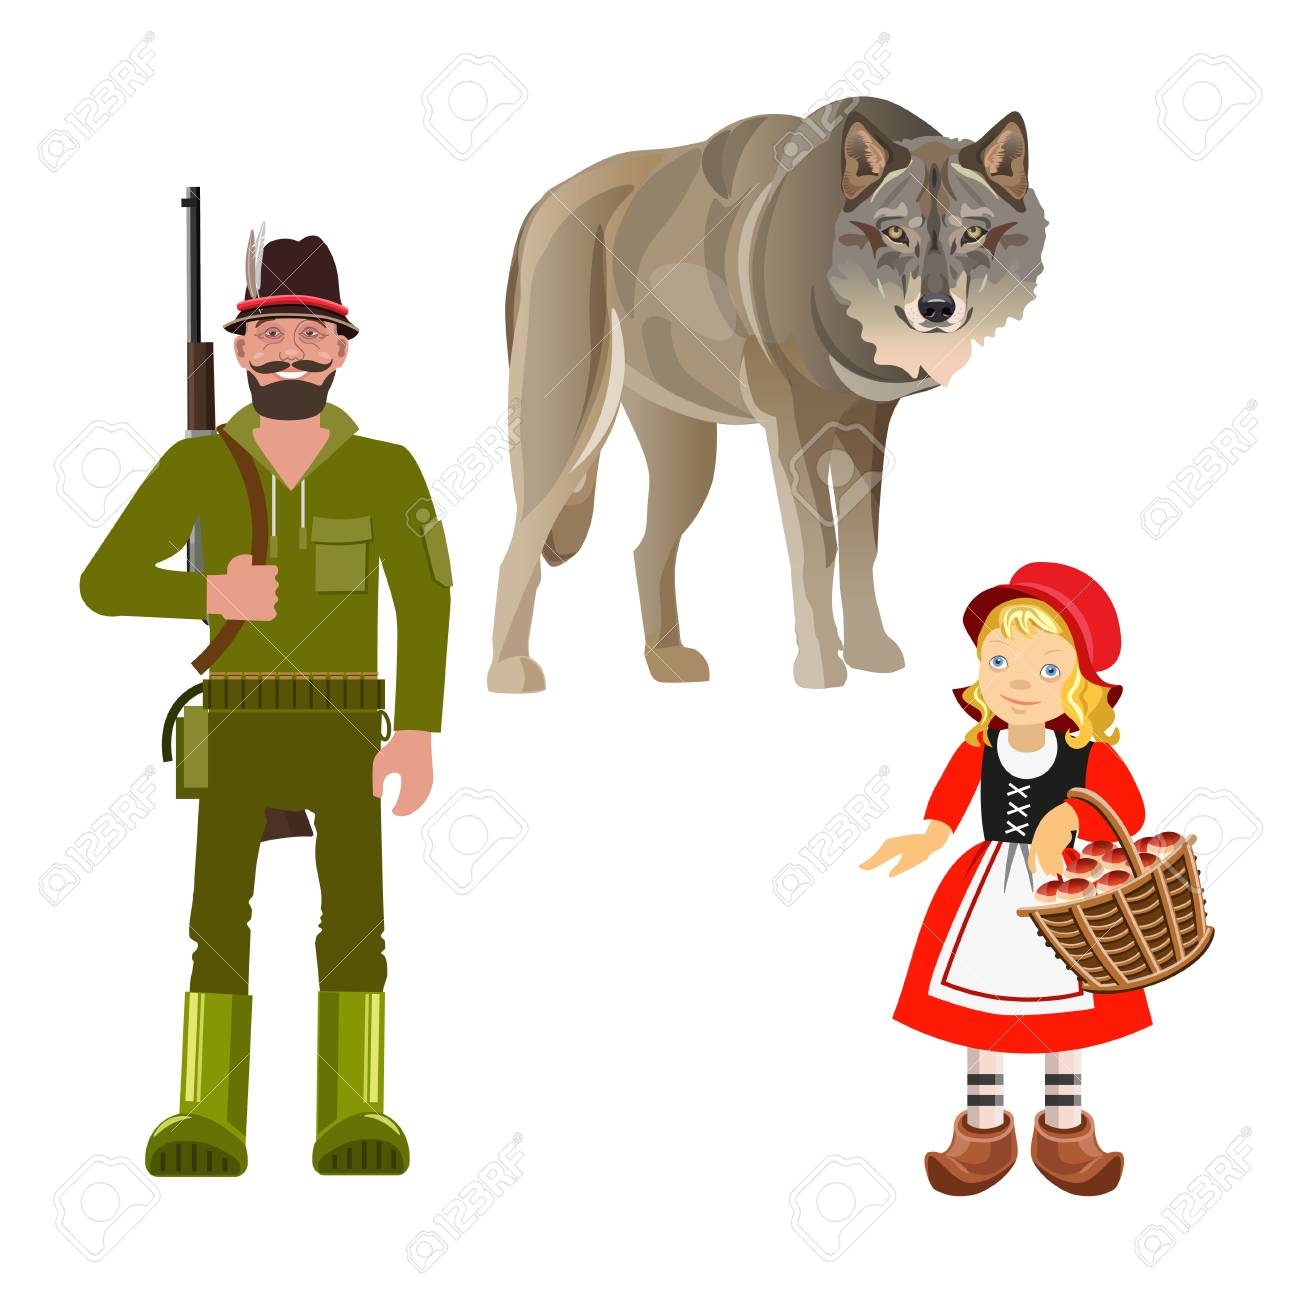 Set of characters from Little Red Riding Hood fairy tale. Vector illustration isolated on white background - 115094087